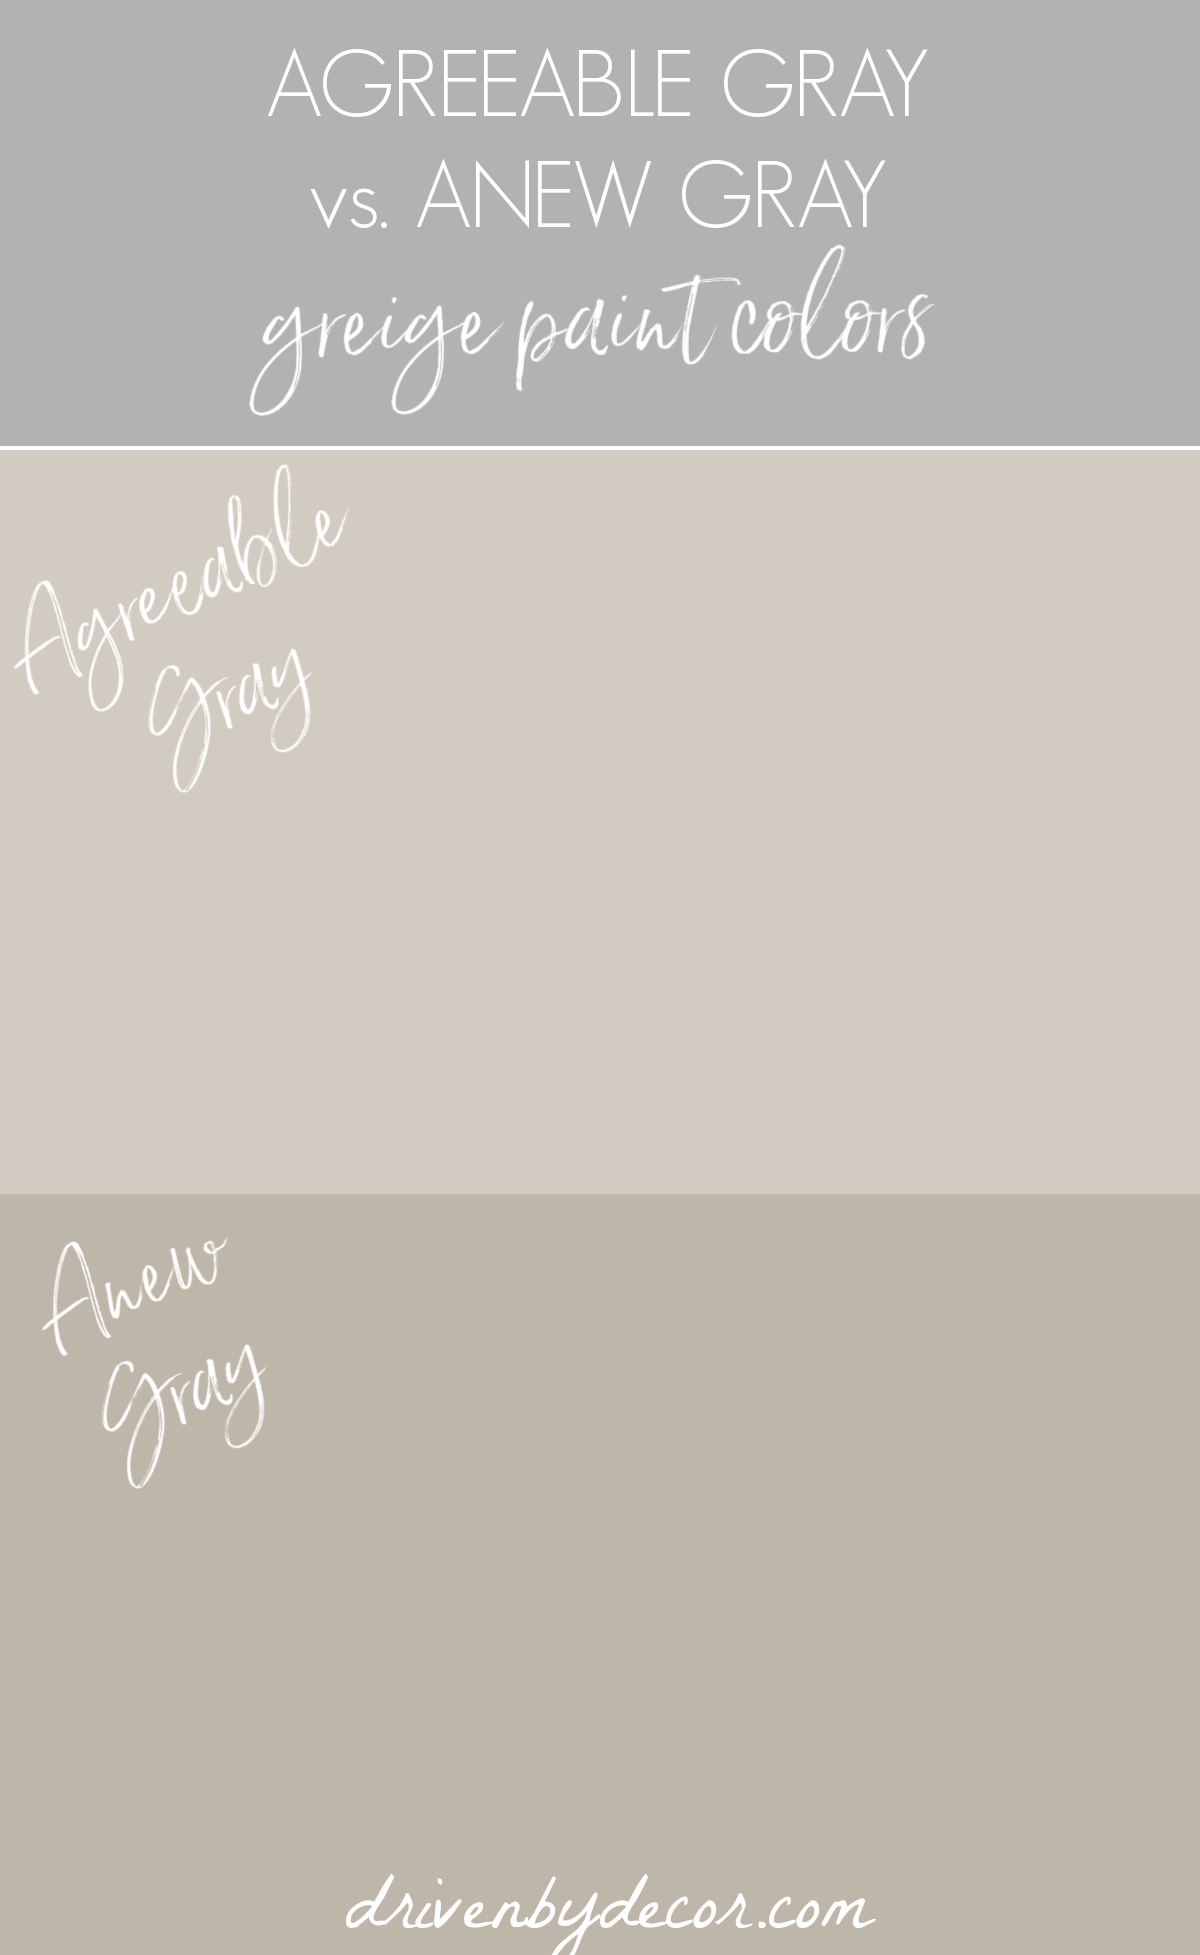 Anew Gray vs. Agreeable Gray greige paint colors